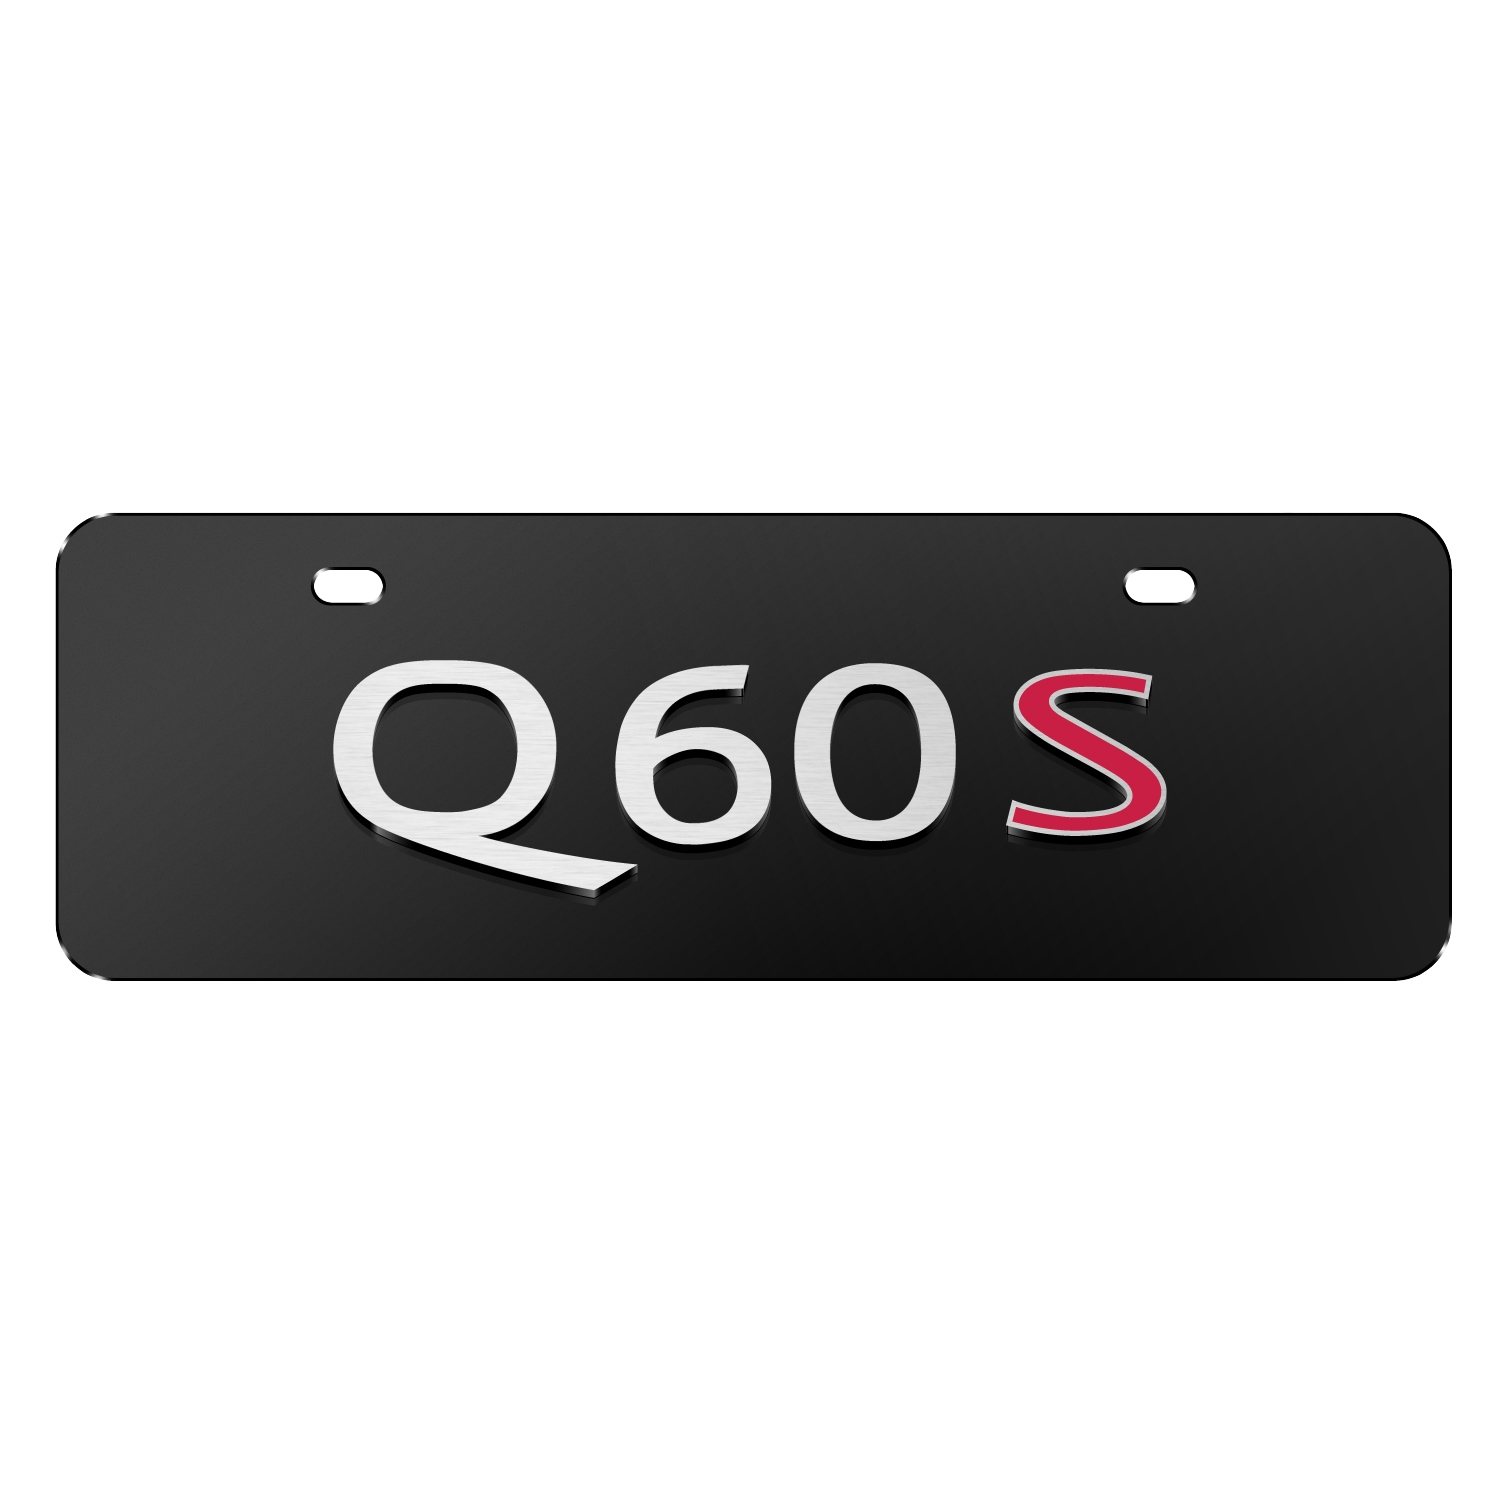 """INFINITI Q60S Name Black 12""""x4"""" Half-Size Stainless Steel License Plate"""